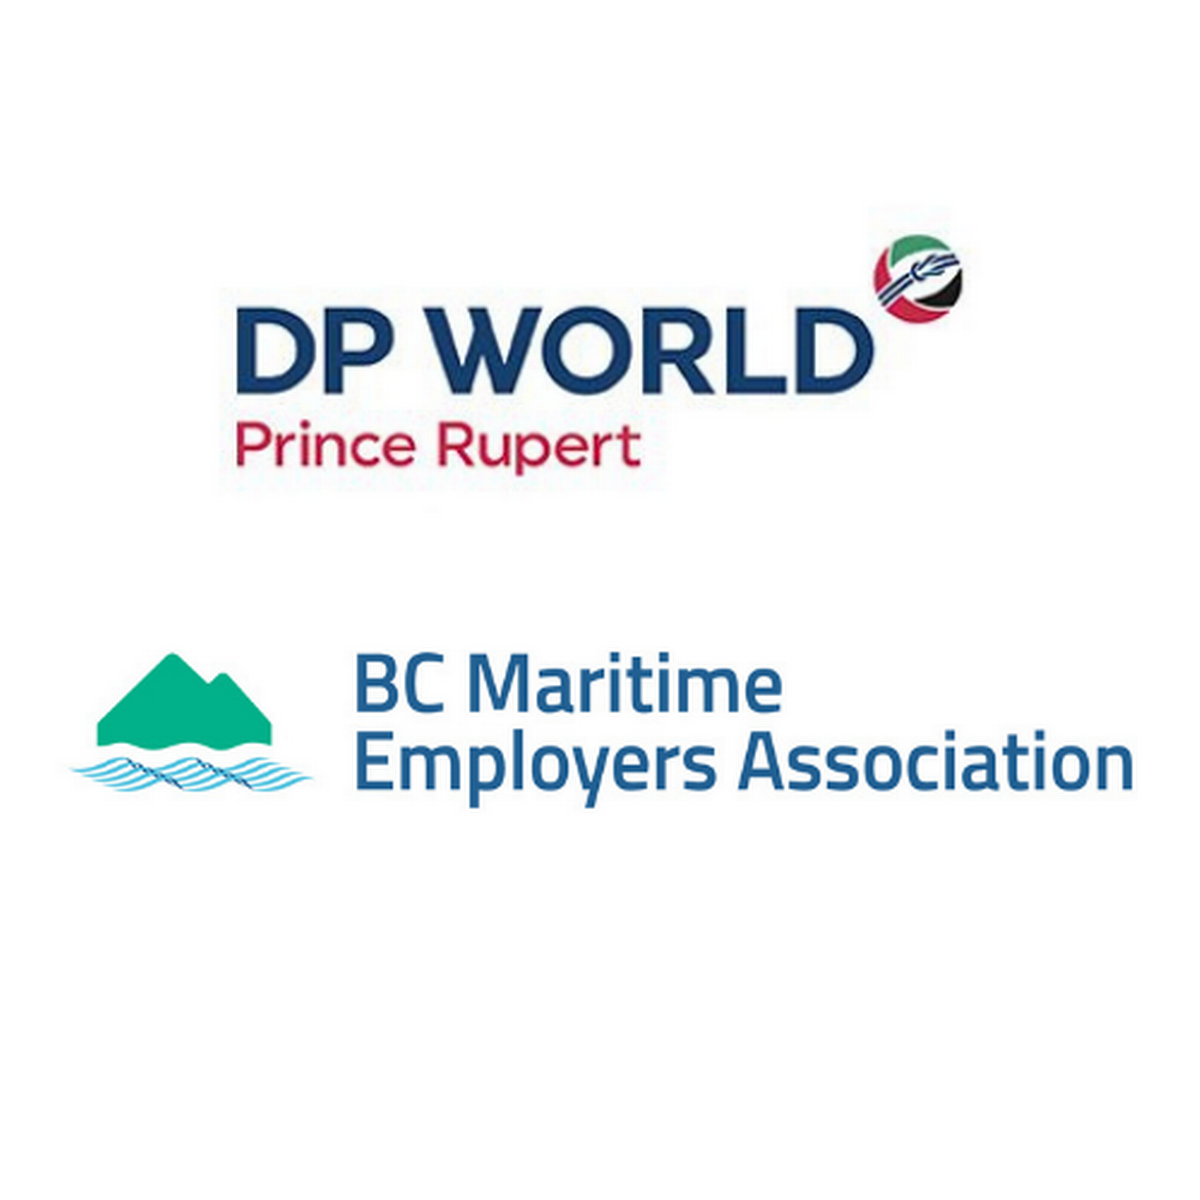 Chamber Lunch - DP World and British Columbia Maritime Employers Association (BCMEA)